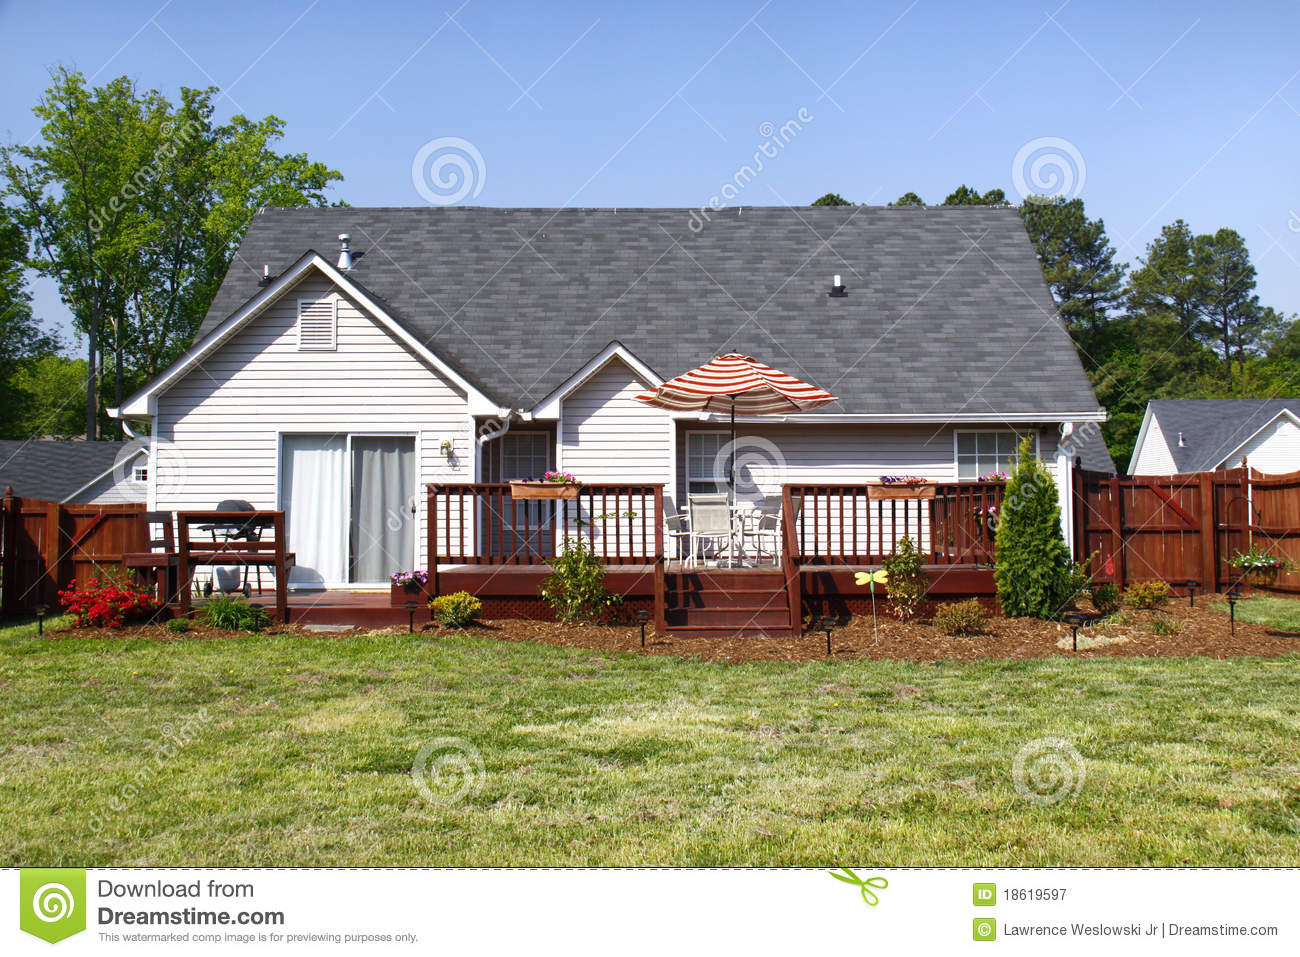 American Dream Home Back Yard And Deck Stock Image